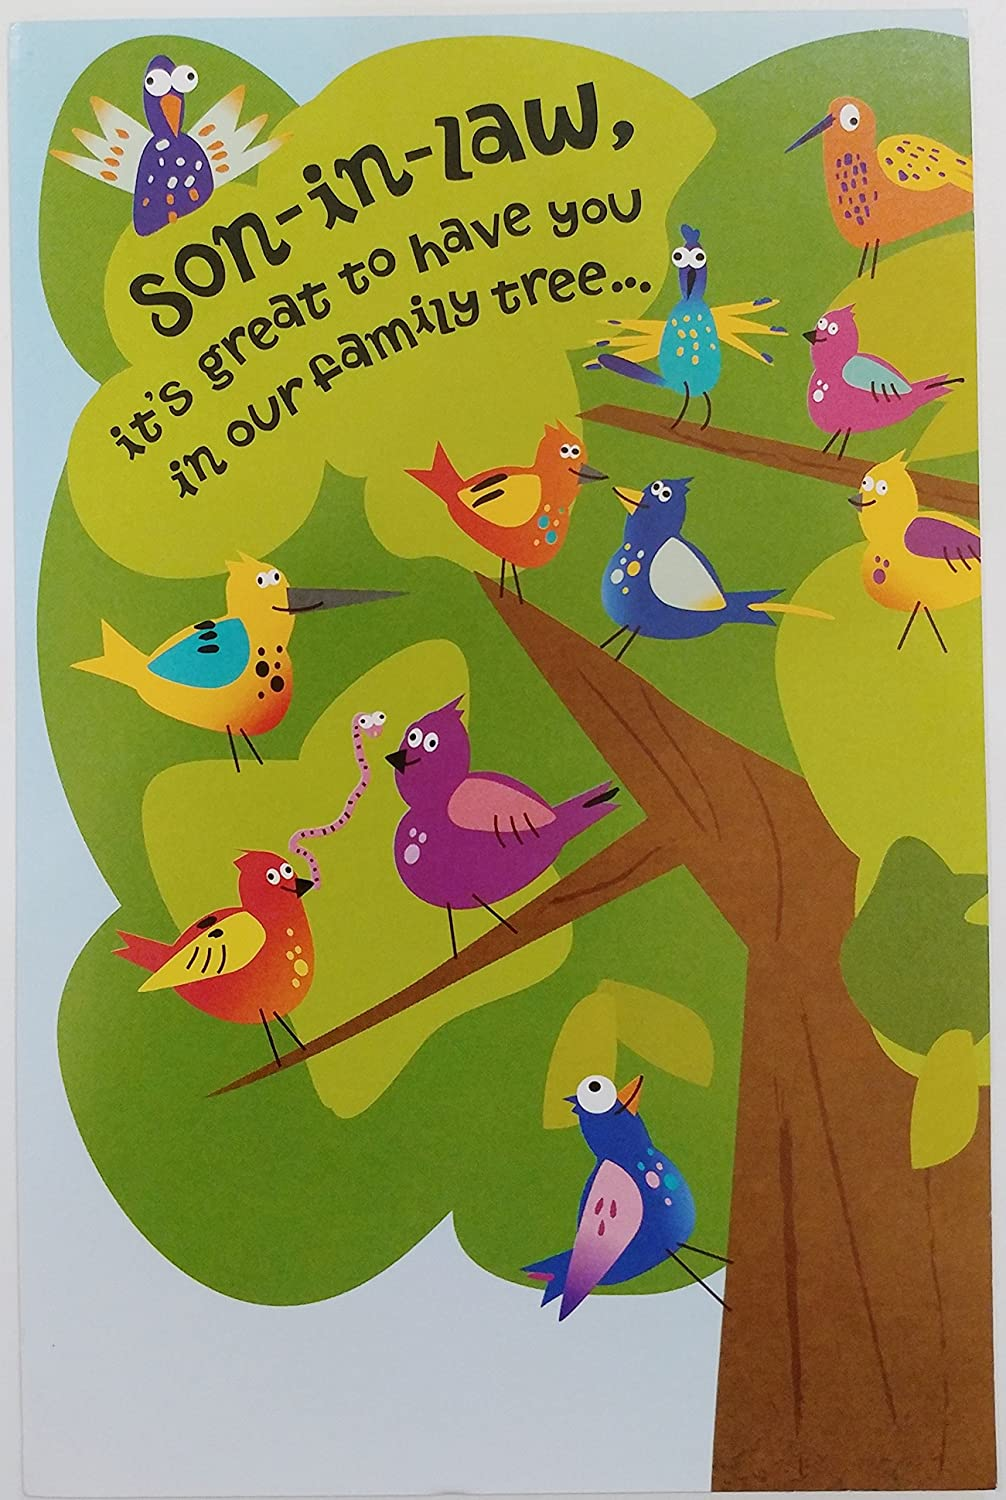 Amazon Happy Birthday Son In Law Great To Have You Our Family Tree Cute Sweet Funny Humor Greeting Card Office Products